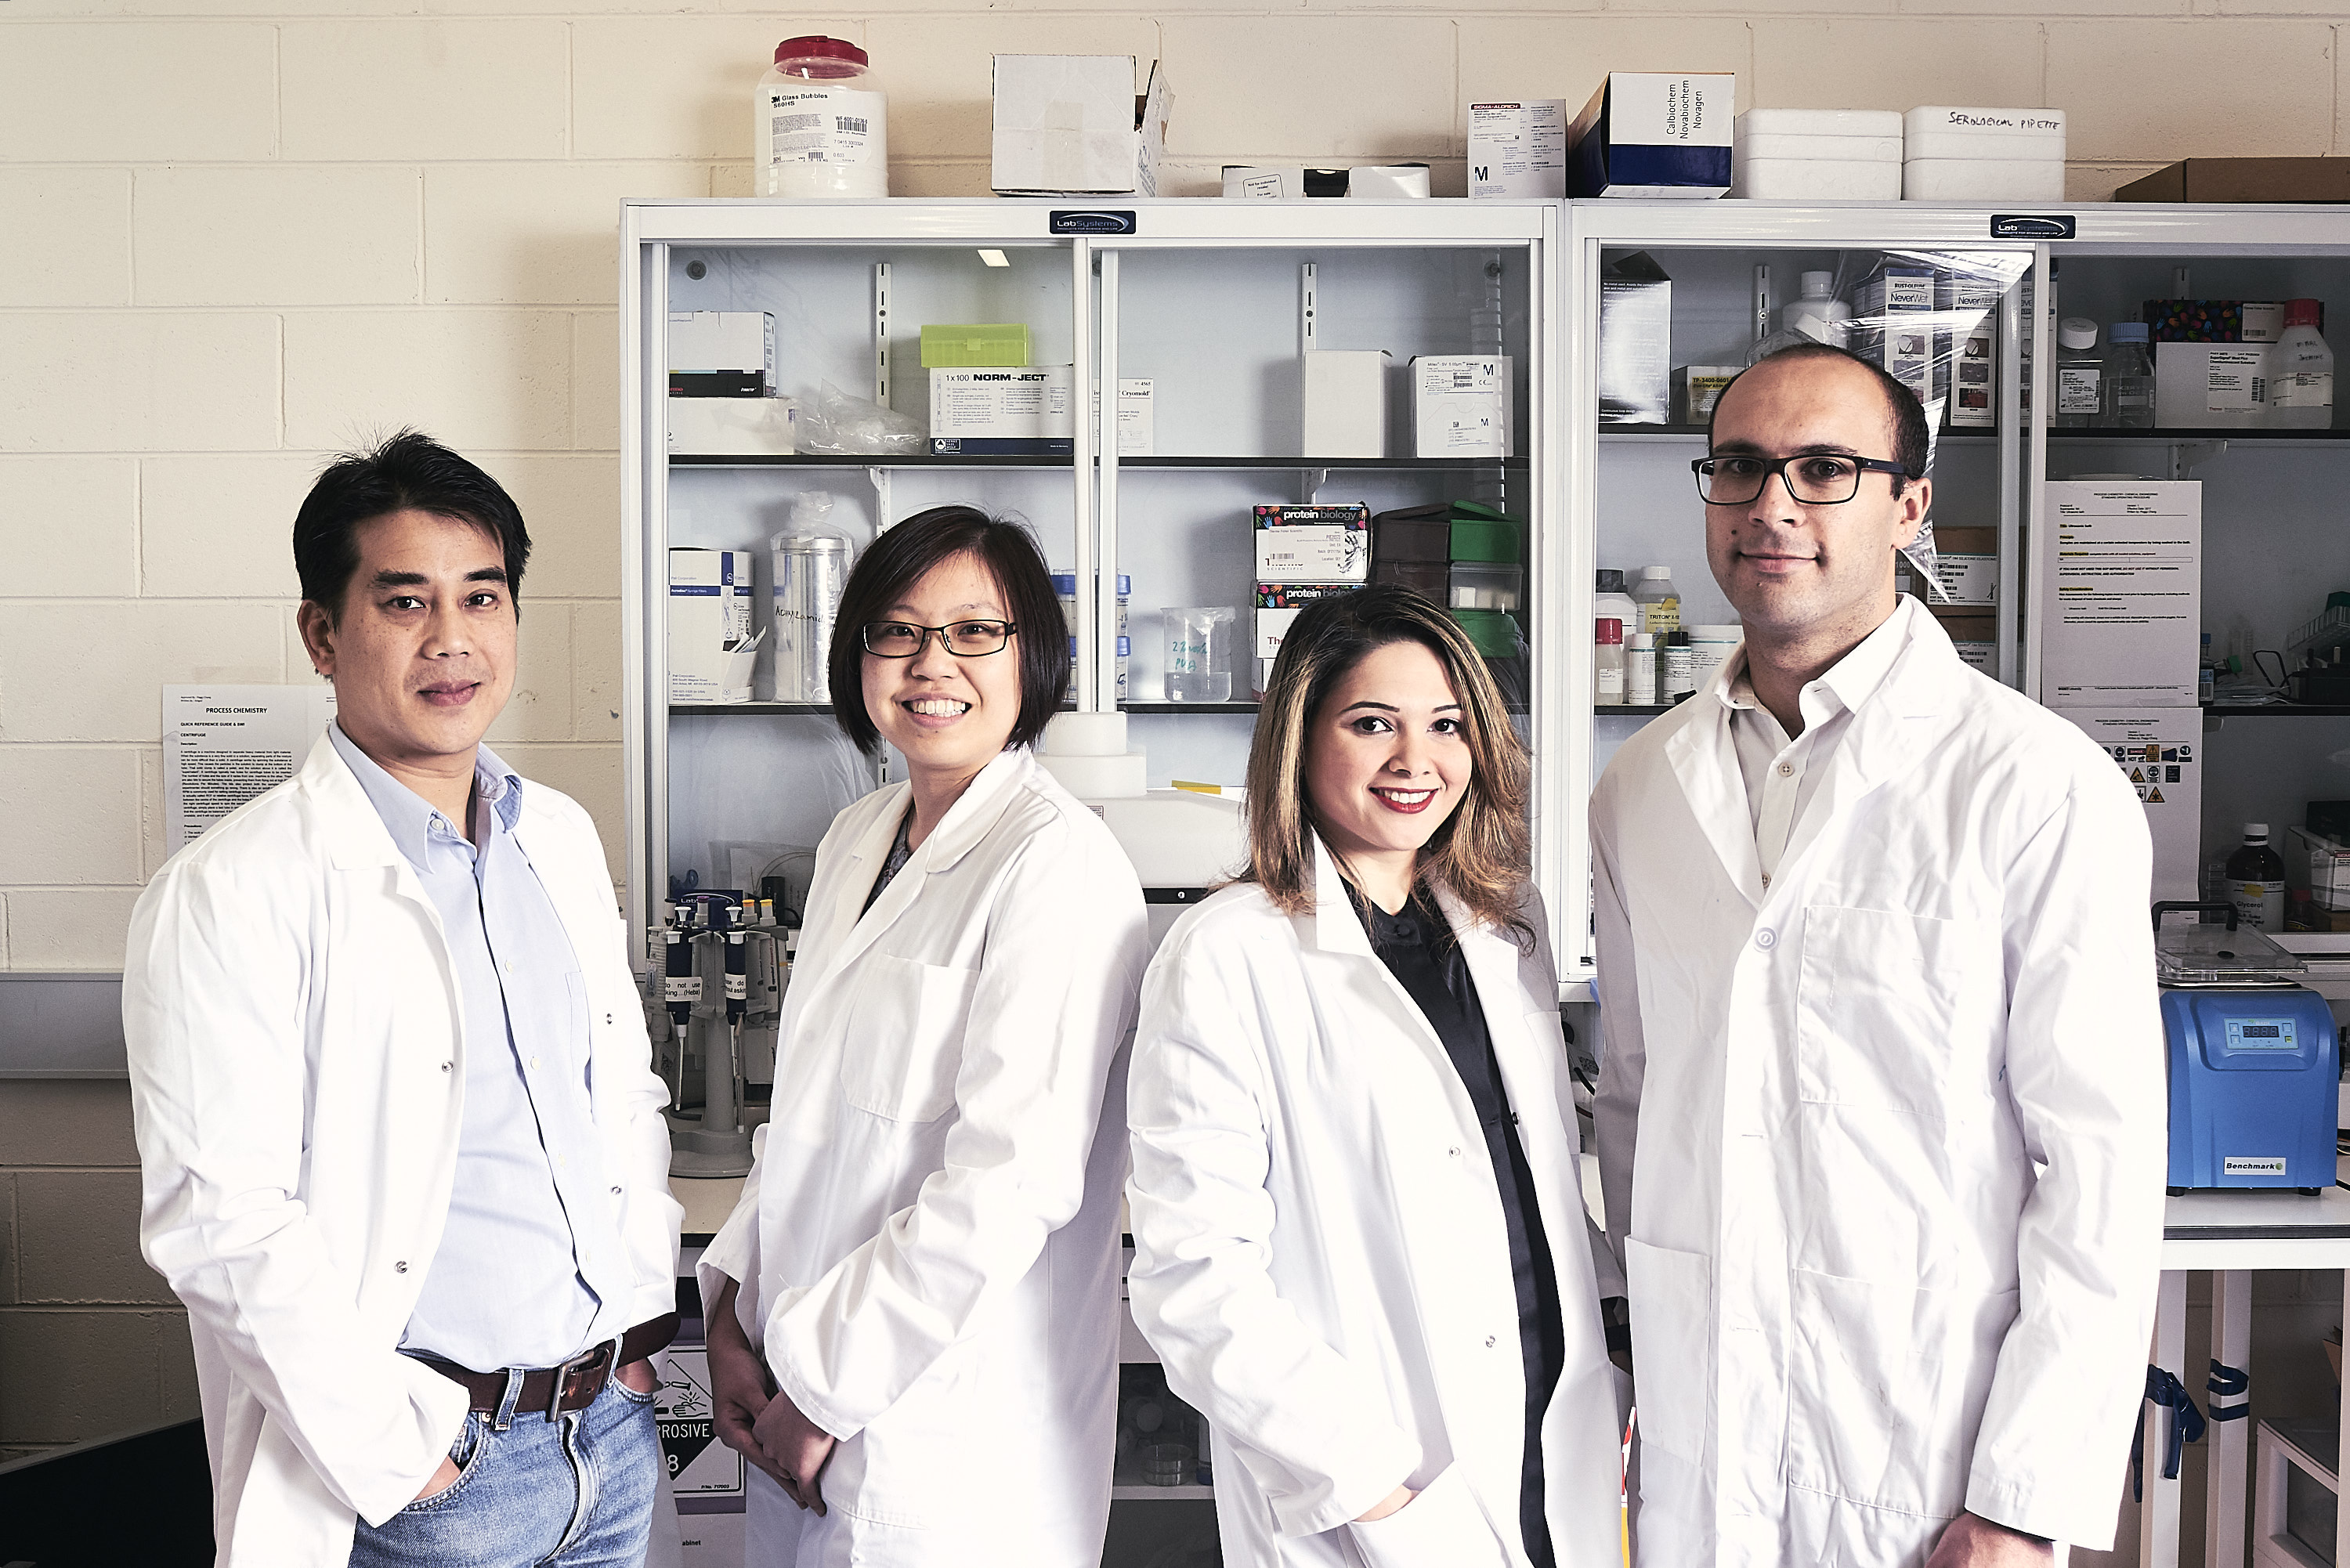 The team behind the research: Distinguished Professor Leslie Yeo, Lillian Lee, Dr Heba Ahmed, Dr Amgad Rezk.